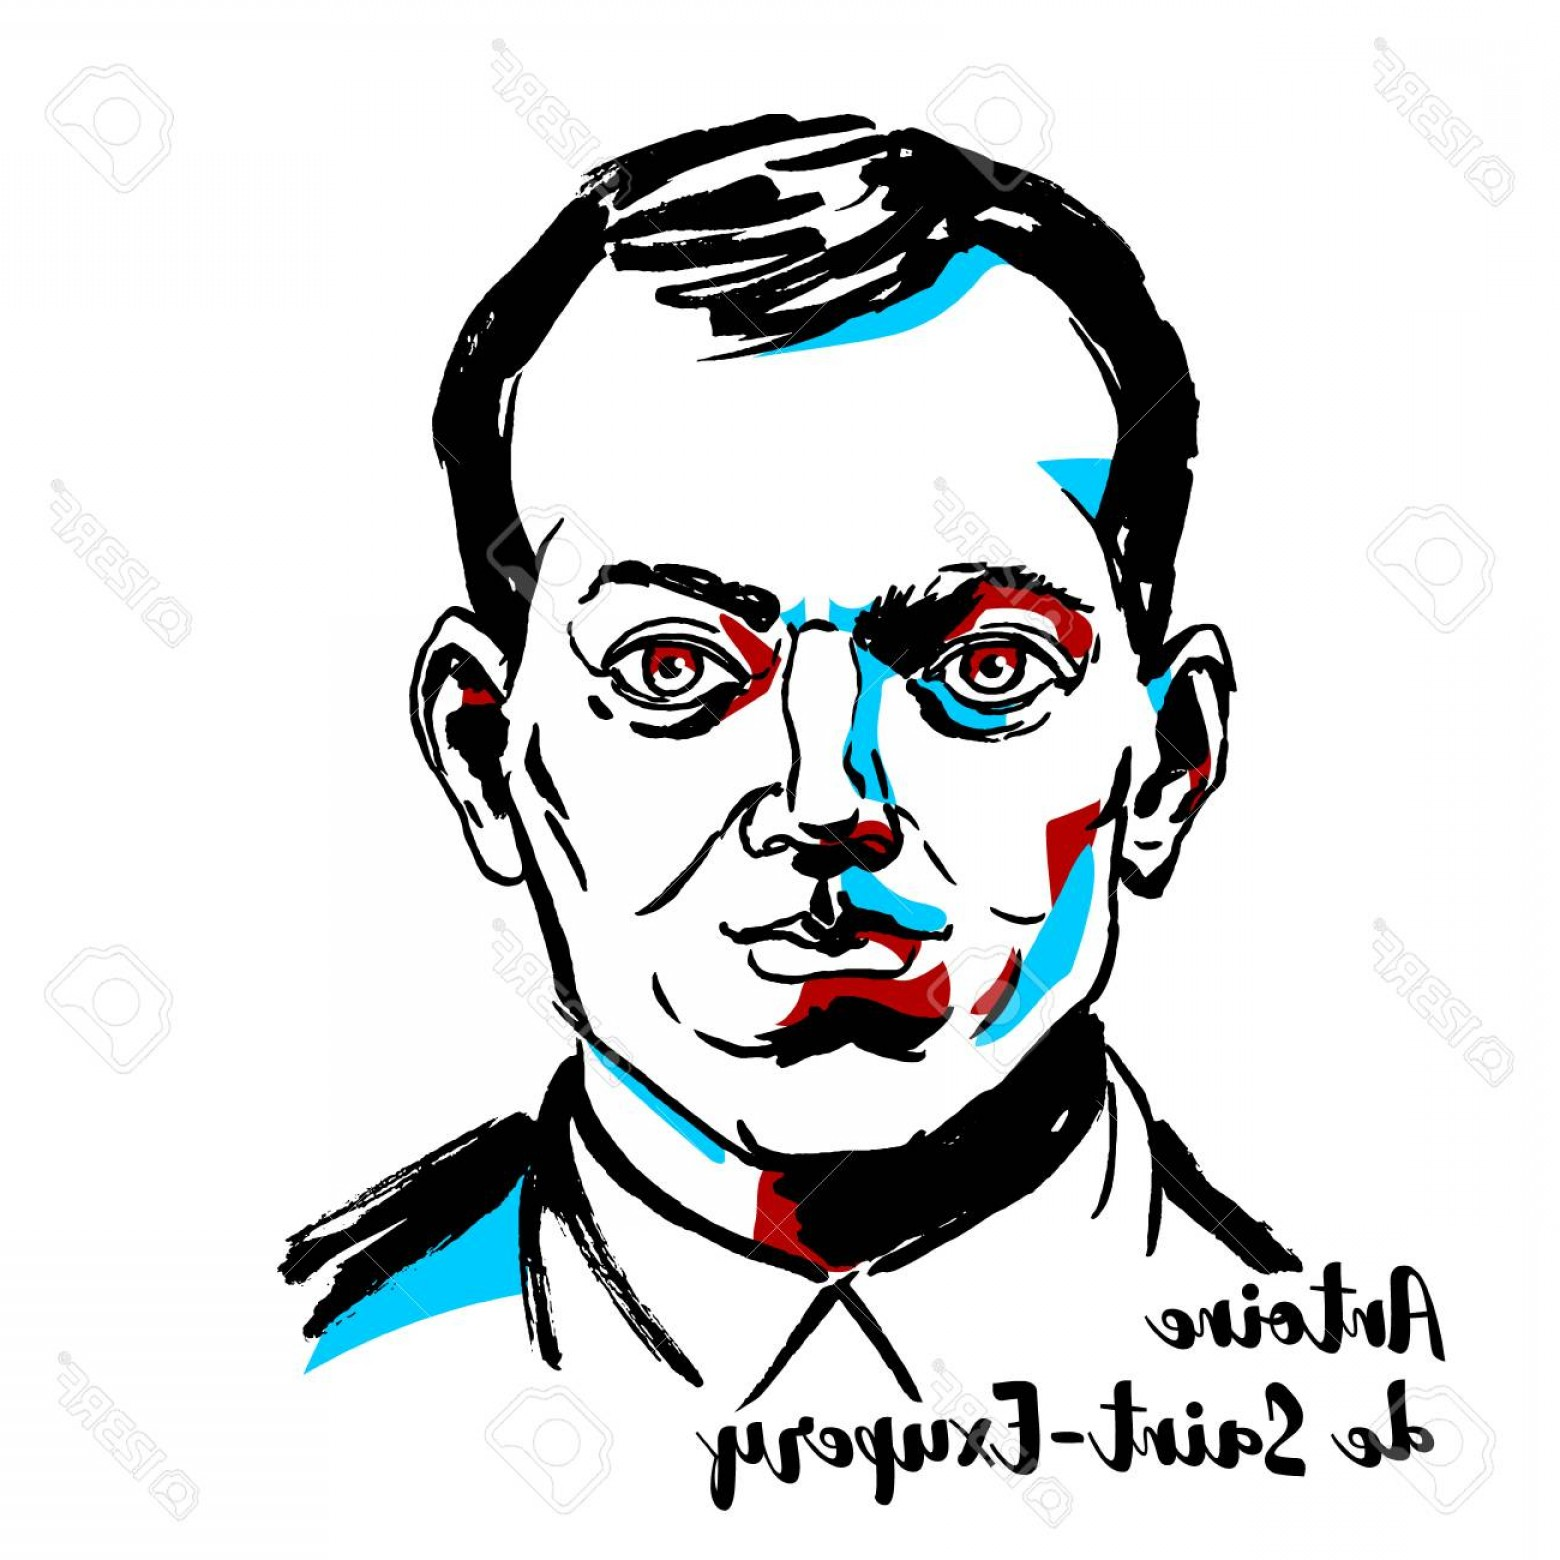 Aviator Vector Ink Drawings: Photostock Vector Moscow Russia September Antoine De Saint Exupery Engraved Vector Portrait With Ink Contours